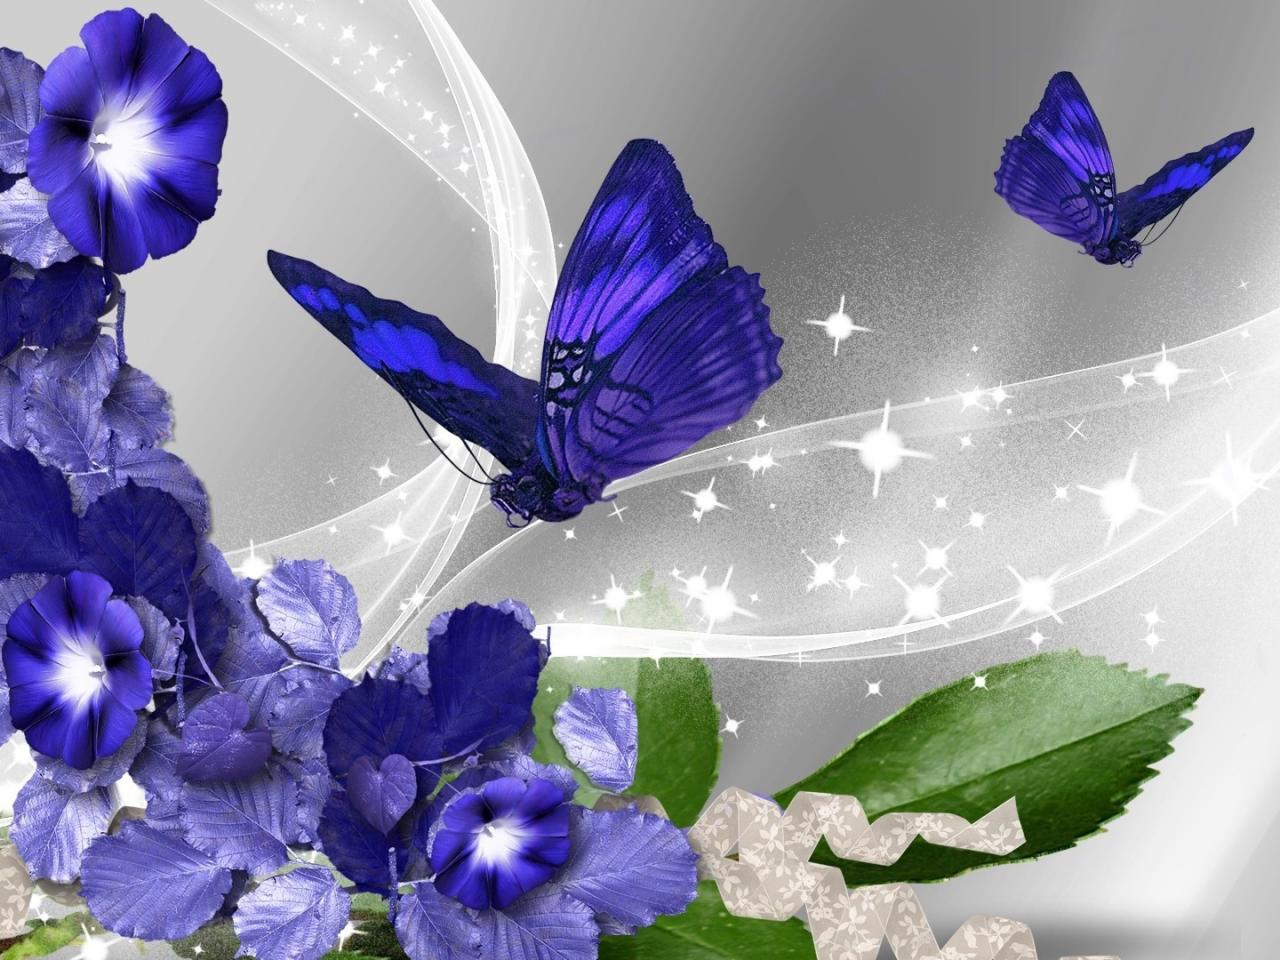 Nature Hd 3d Wallpapers 1080p Widescreen Pictures Of Blue Flowers And Butterflies With Abstract